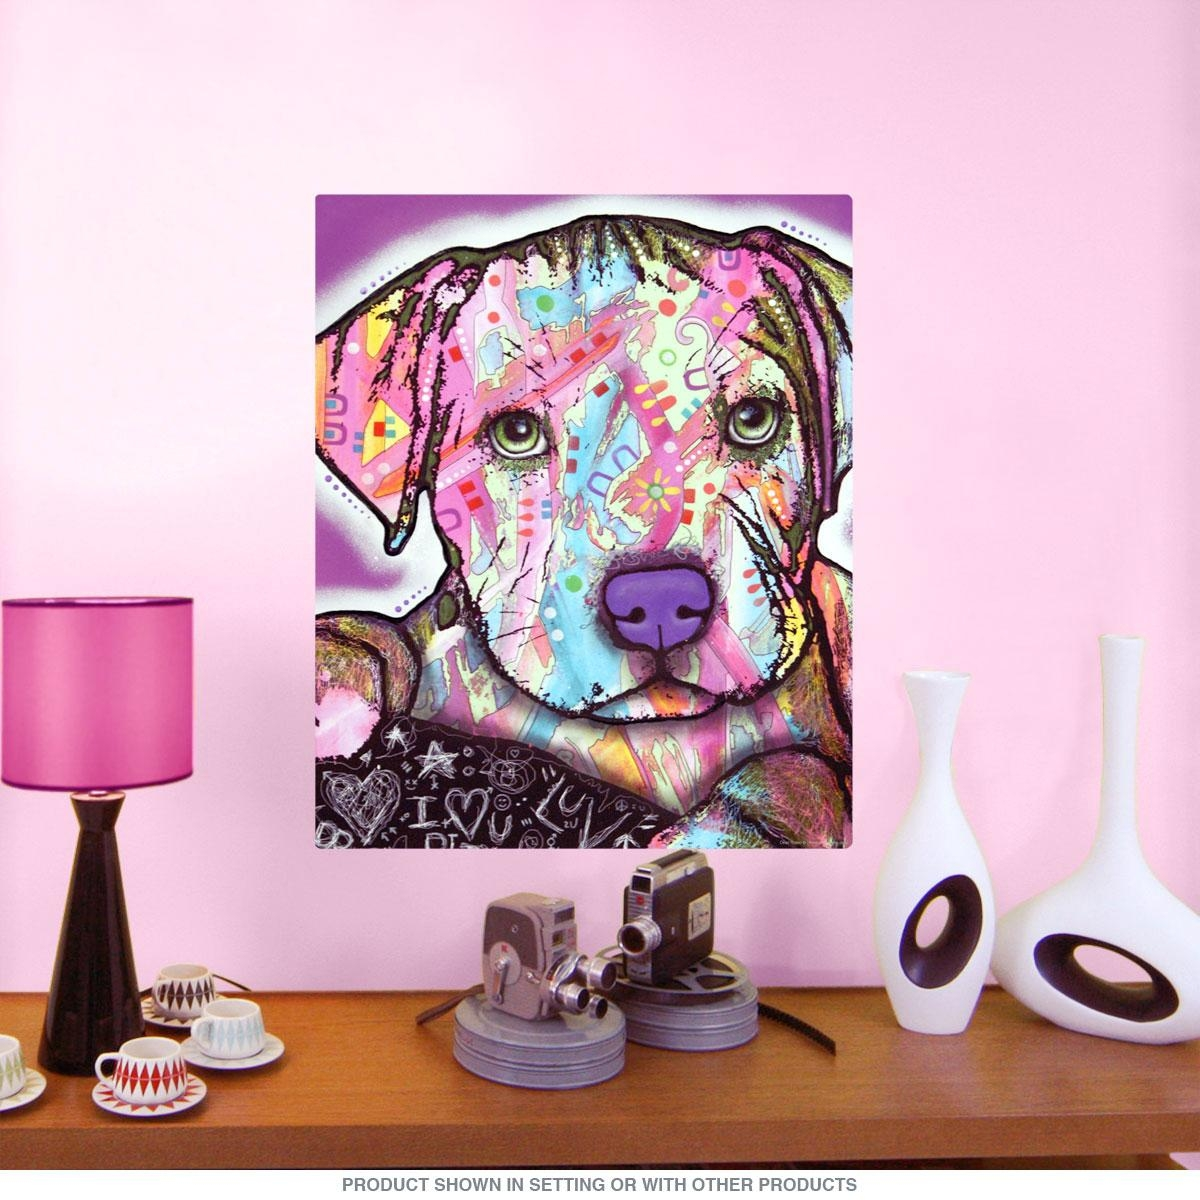 Baby Pit Bull Dog Dean Russo Pop Art Wall Decal | Pet Wall Decor Regarding Pitbull Wall Art (Image 6 of 20)